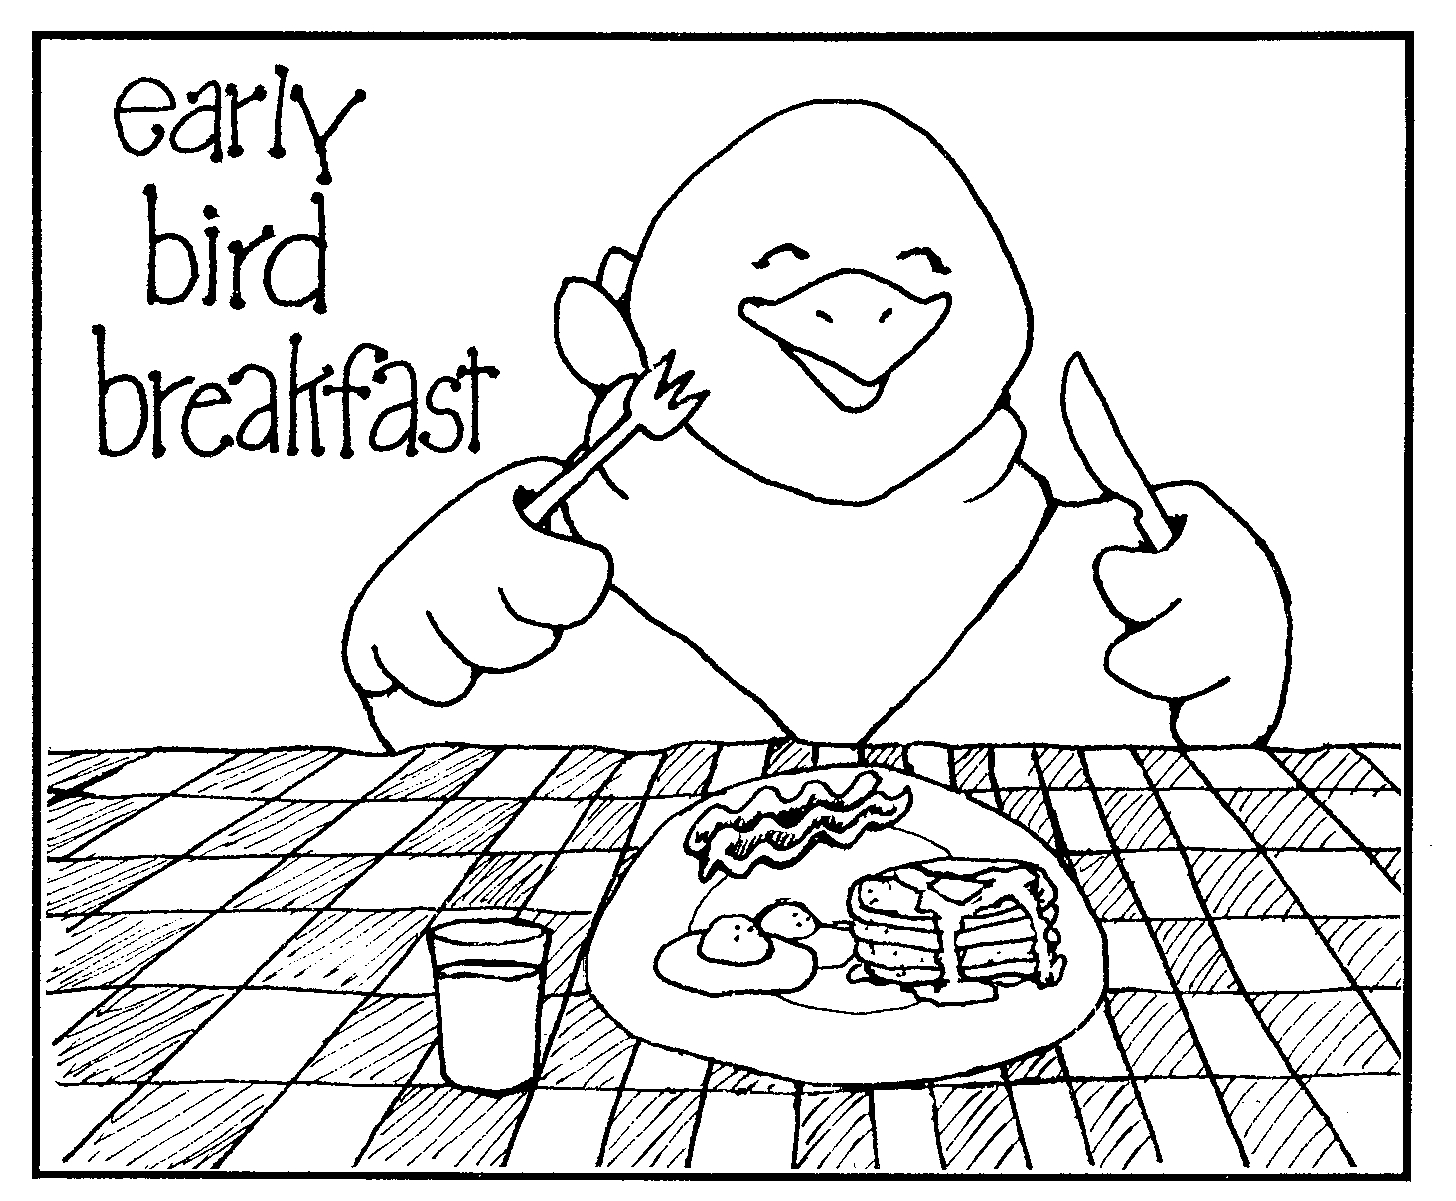 Clip Art Breakfast Coloring Page suggestions online images of eat breakfast clipart black and white kid